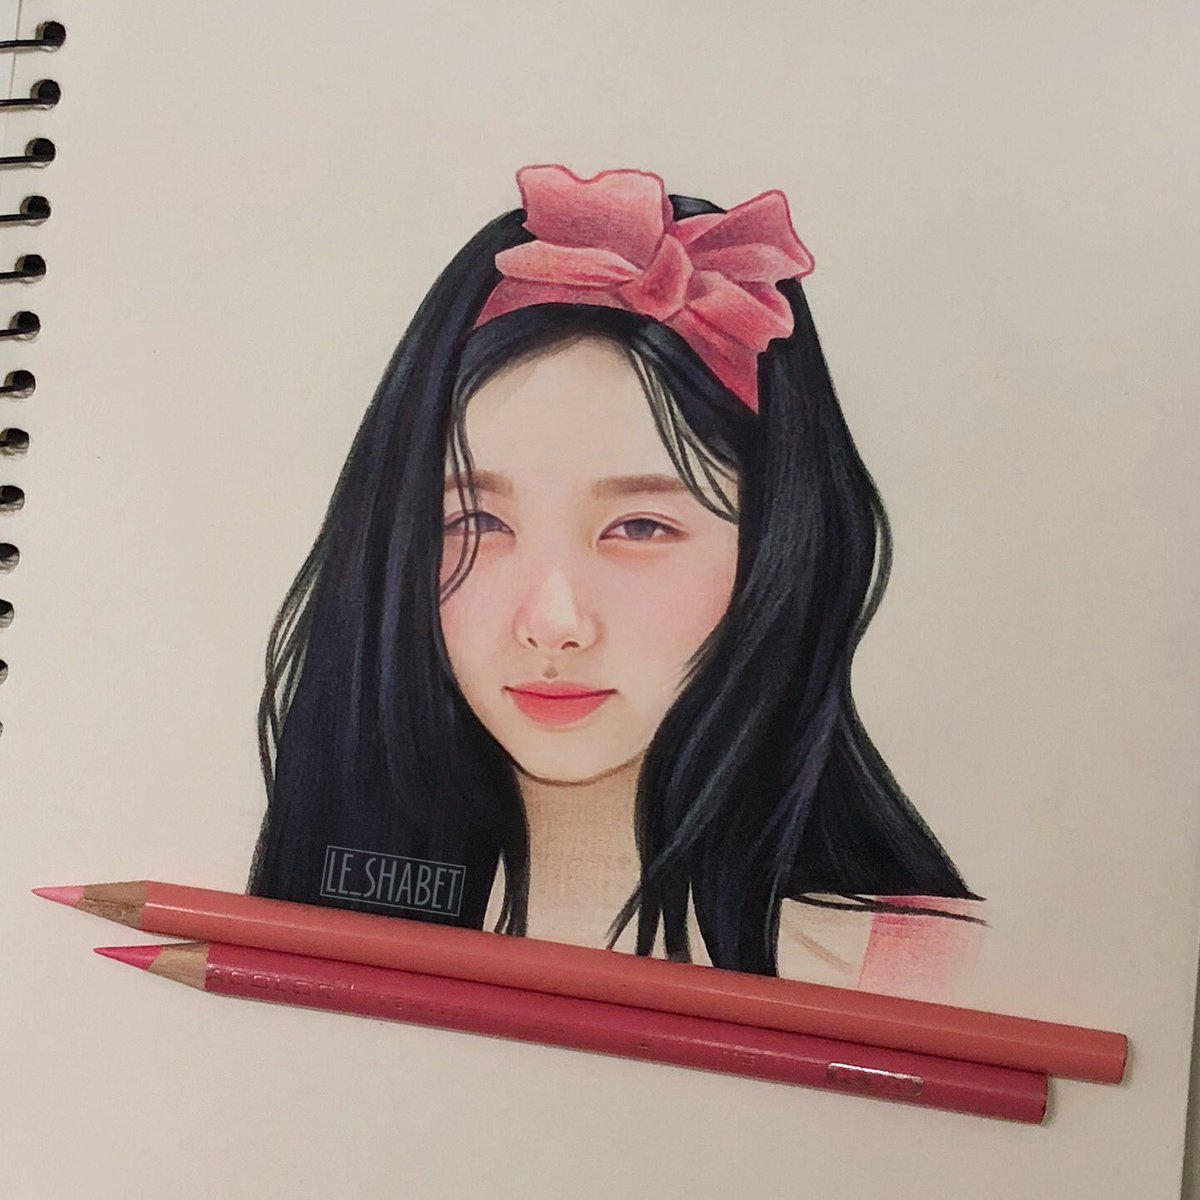 Twice nayeon fan art #twice #nayeon #twicefanart #nayeonfanart